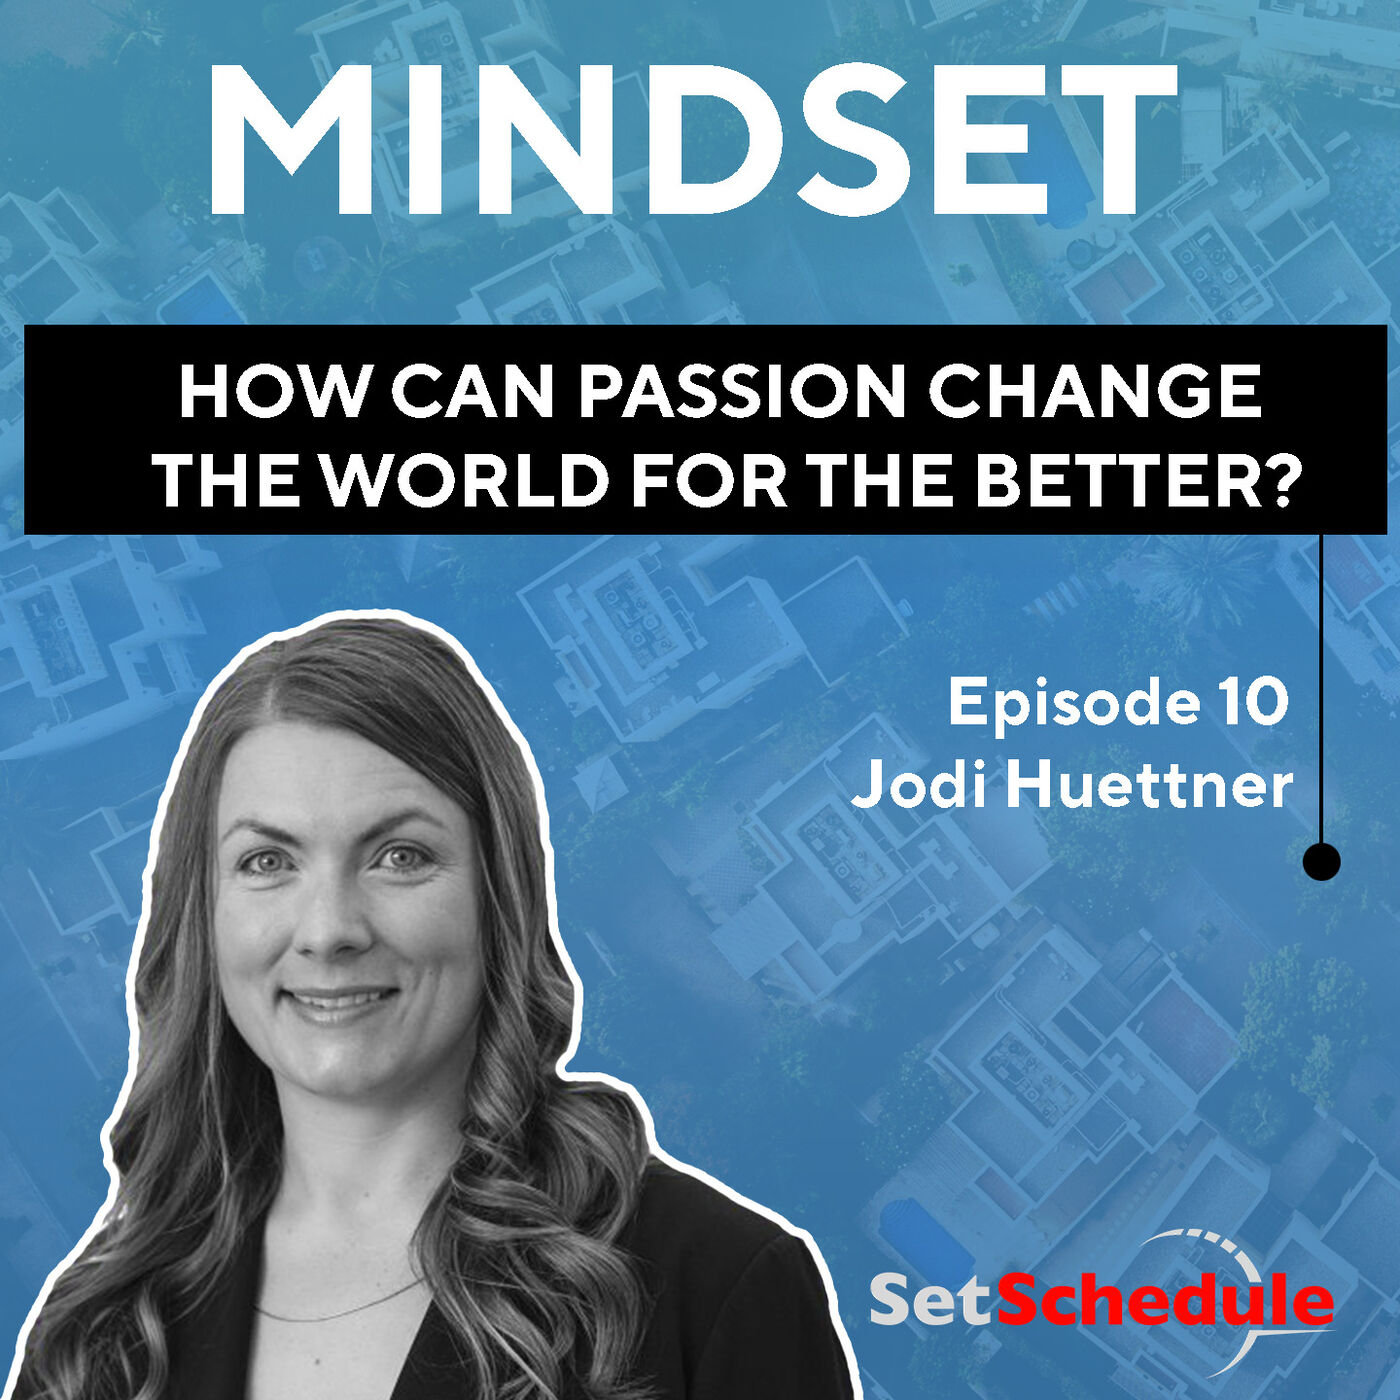 How Can Passion Change the World for the Better? - Jodi Huettner